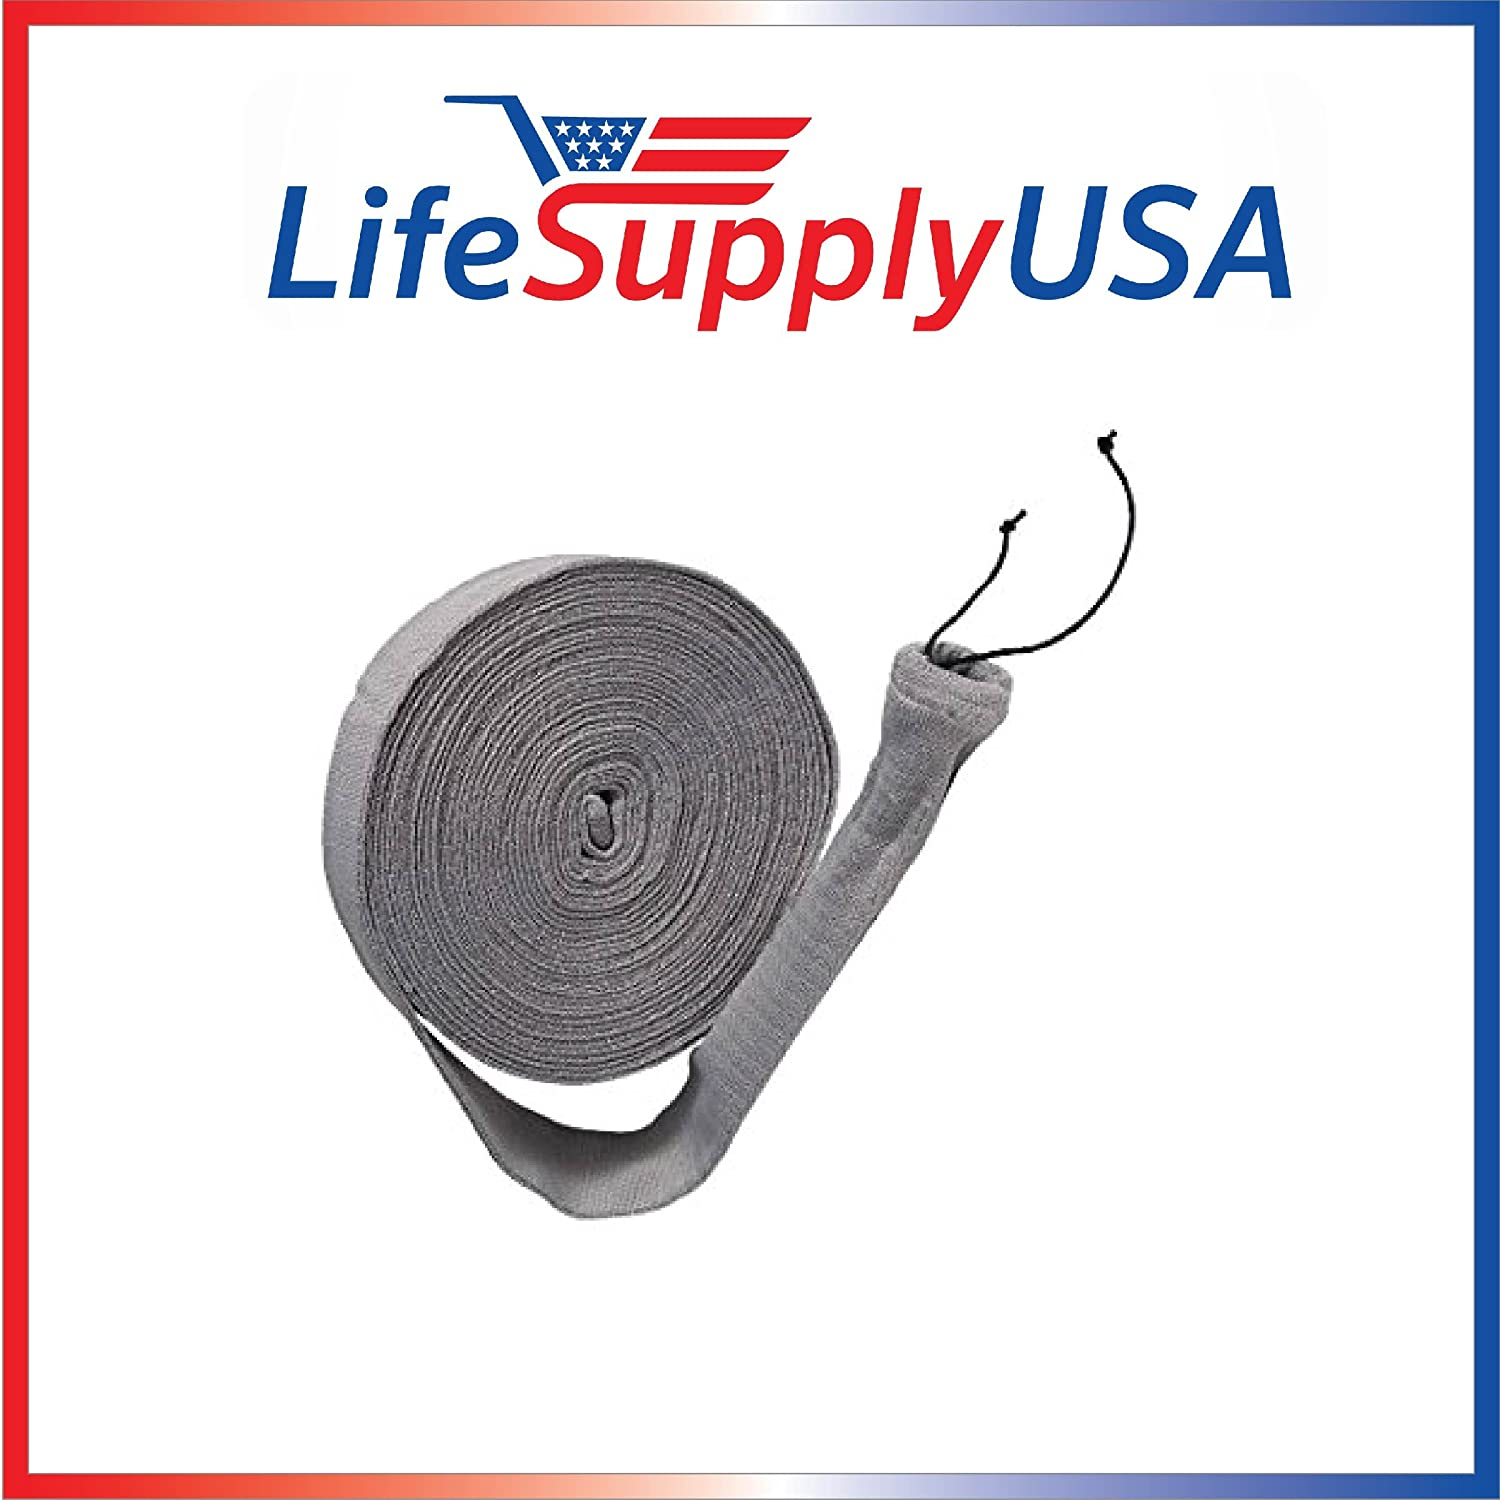 30 ft Central Vacuum Knitted Hose Sock Cover with Application Tube (30 feet length), by LifeSupplyUSA AX-AY-ABHI-89663